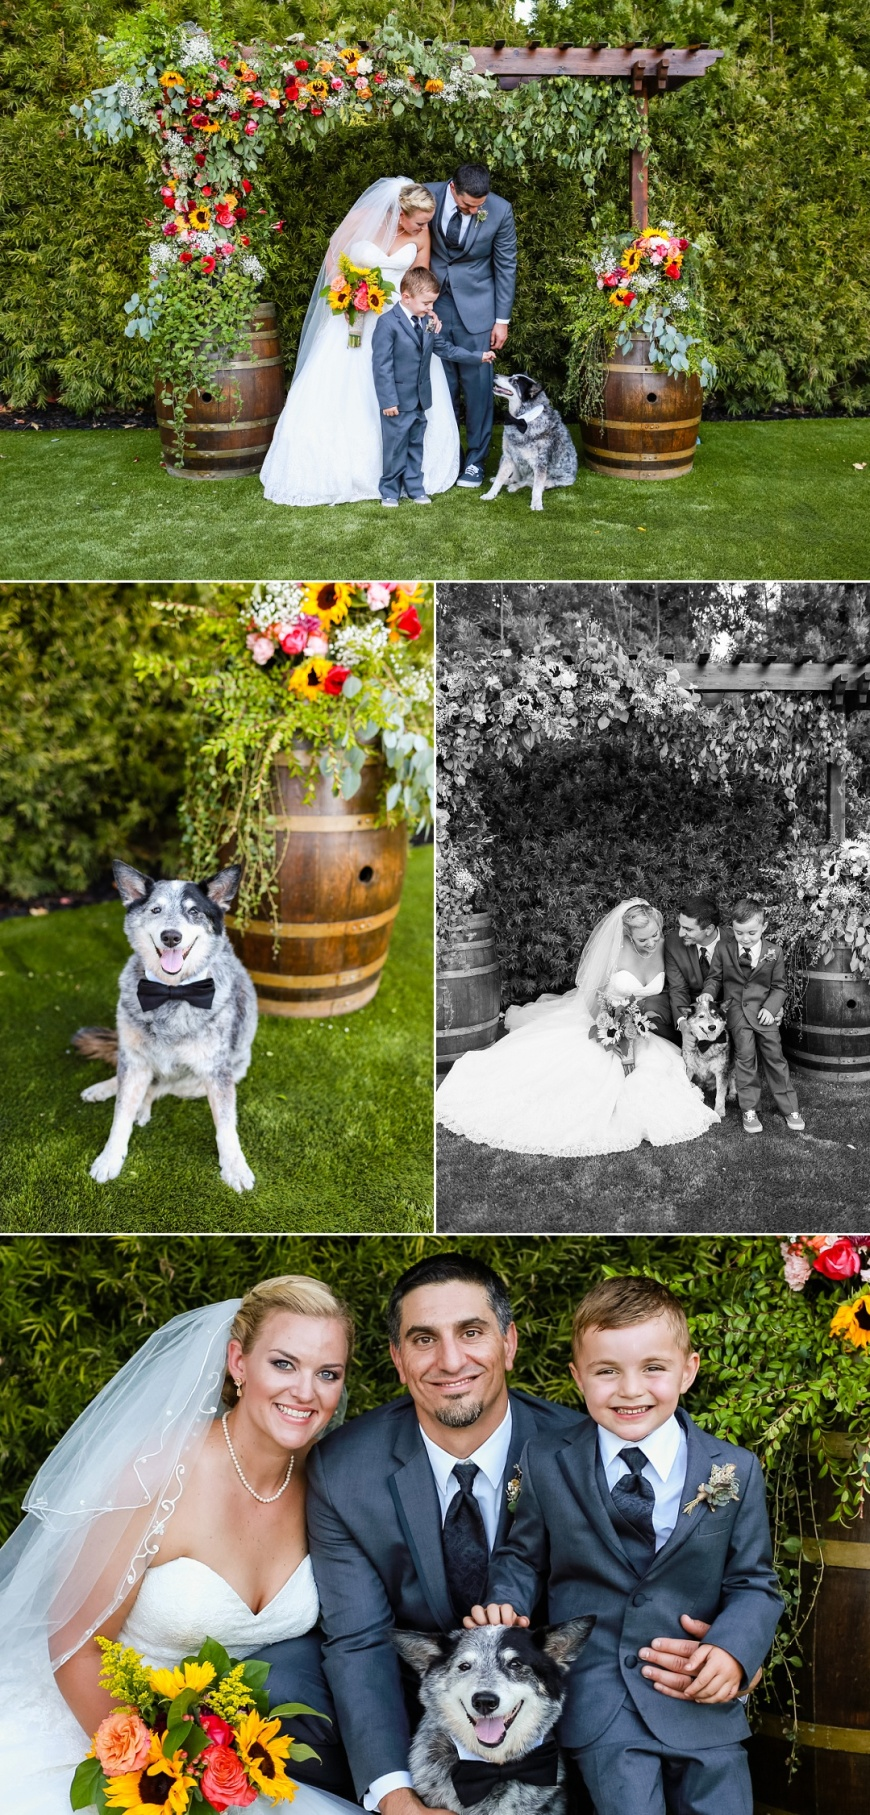 Monte-Sereno-Wedding-Photographer_1063.jpg